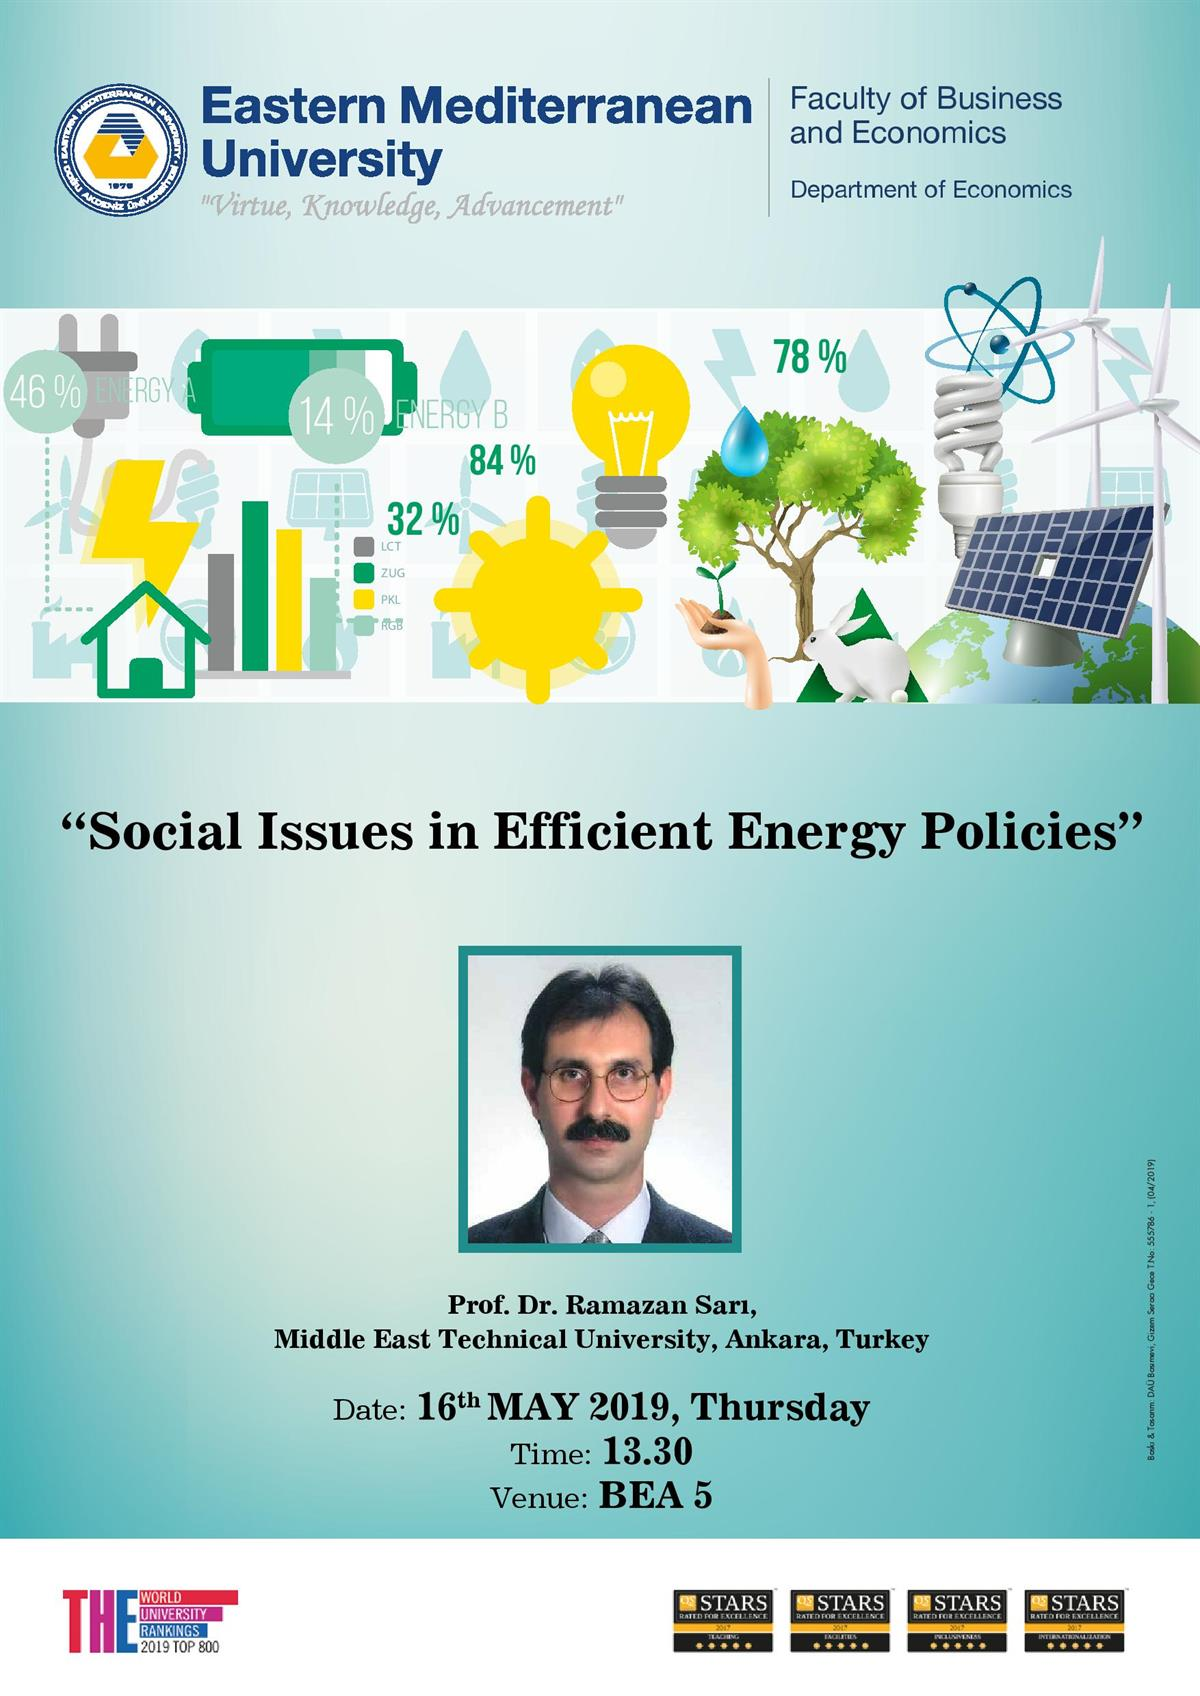 Seminar Series: Social Issues in Efficient Energy Policies By Prof. Dr. Ramazan Sarı